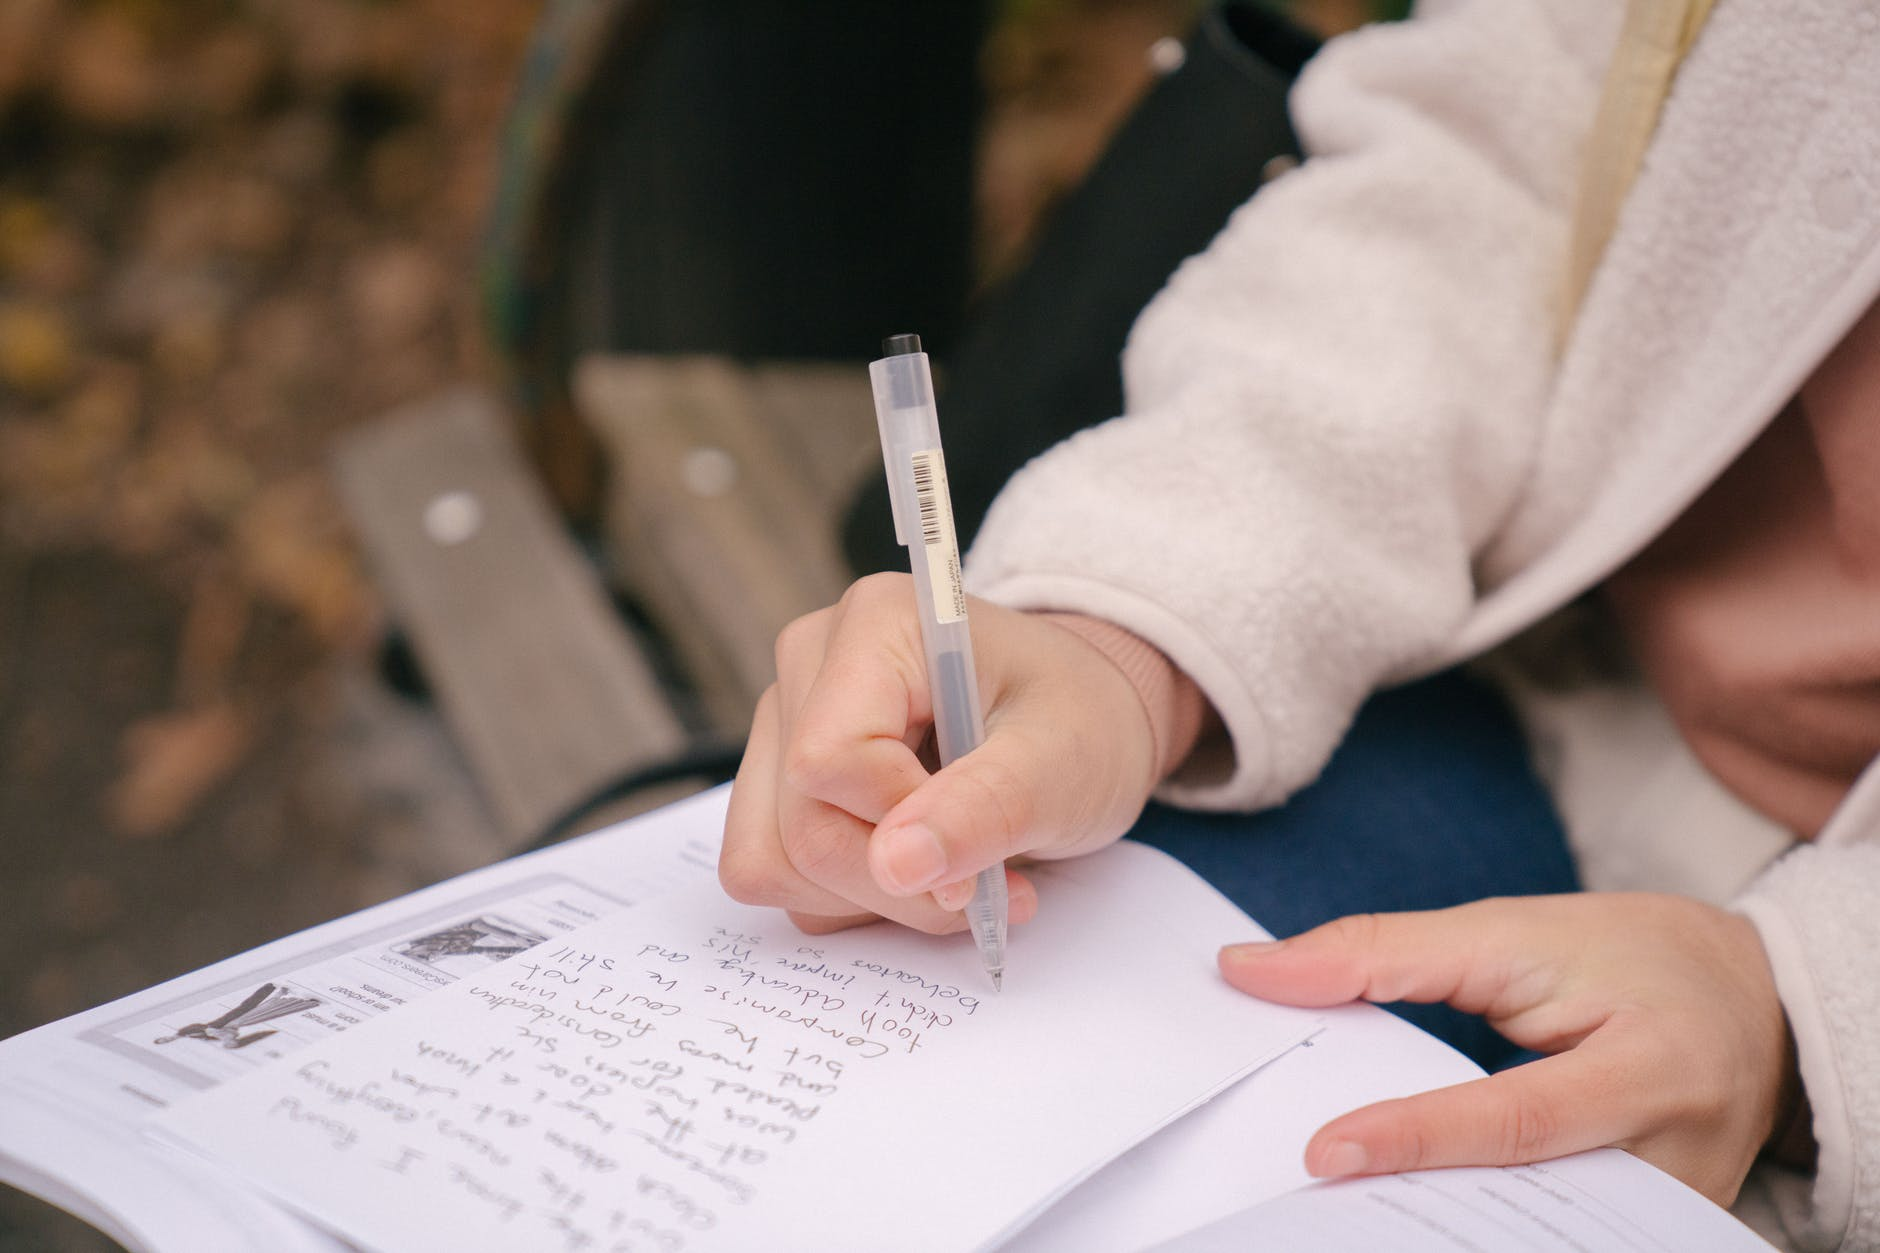 anonymous female writing information on paper with textbook on bench